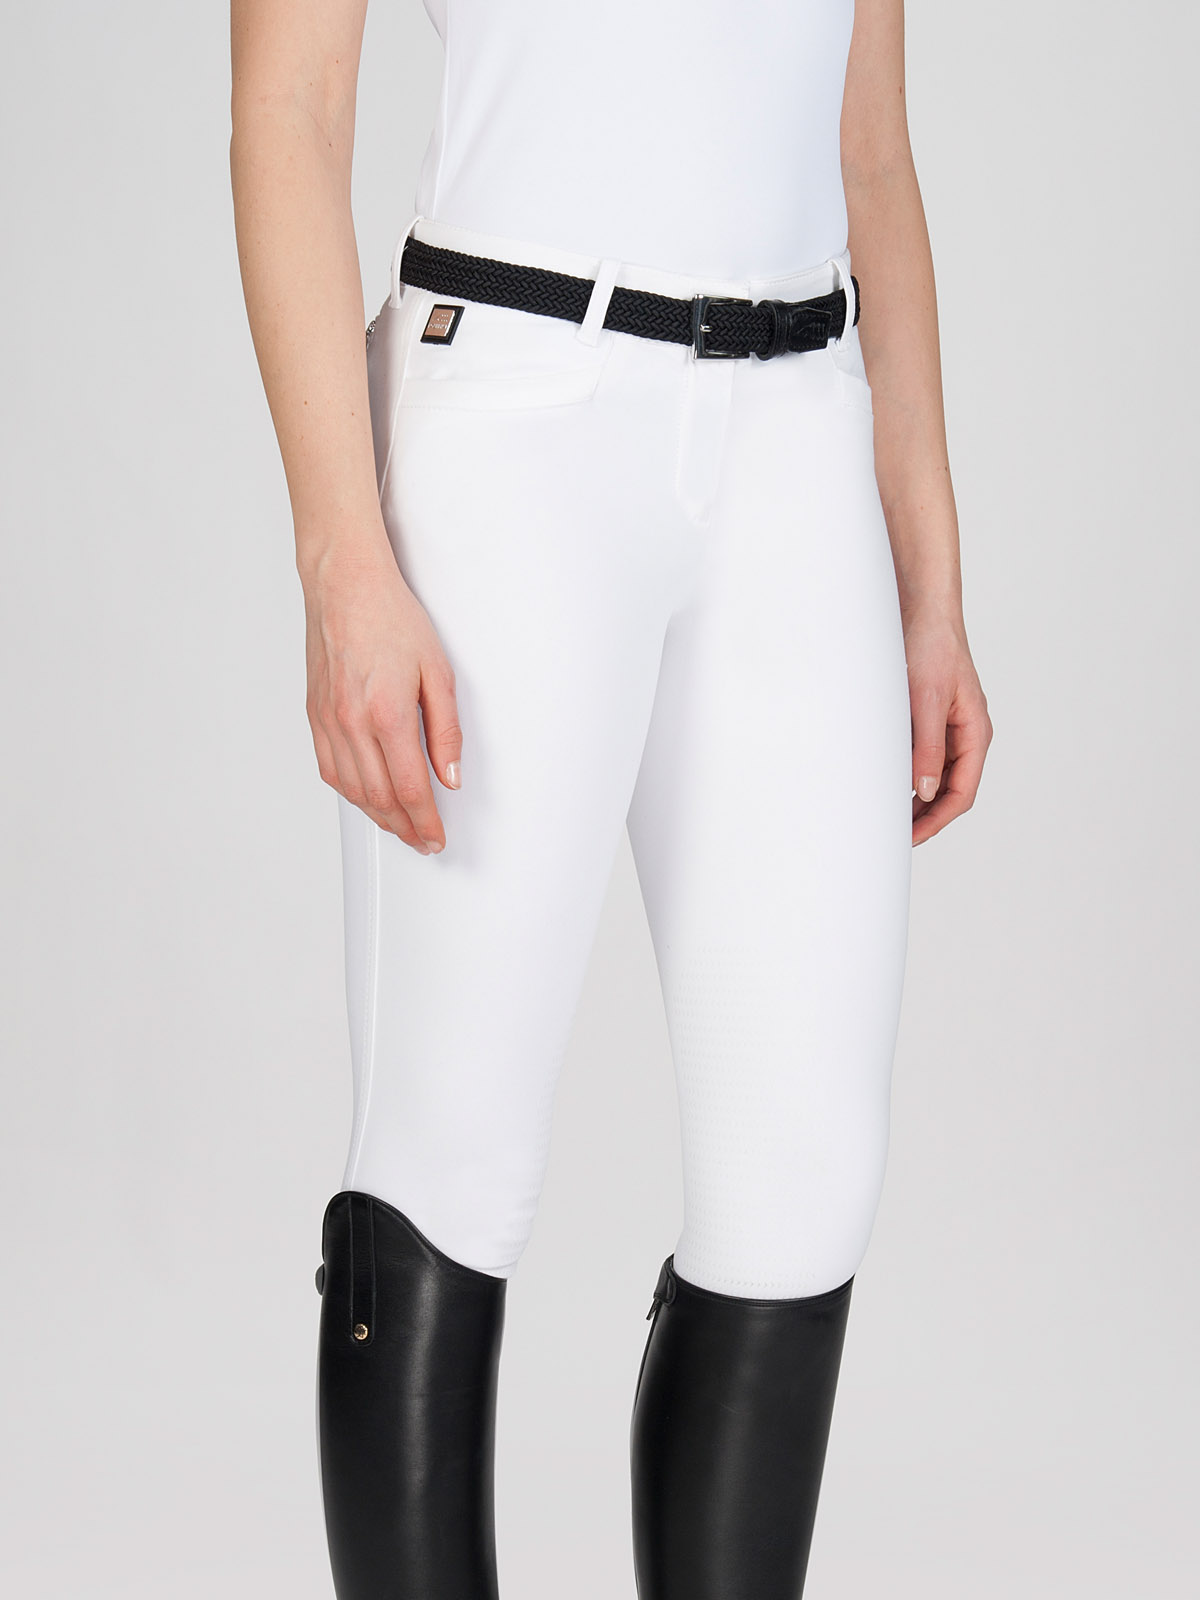 ASH Women's Riding Breeches with X-Grip Knee Patch in white